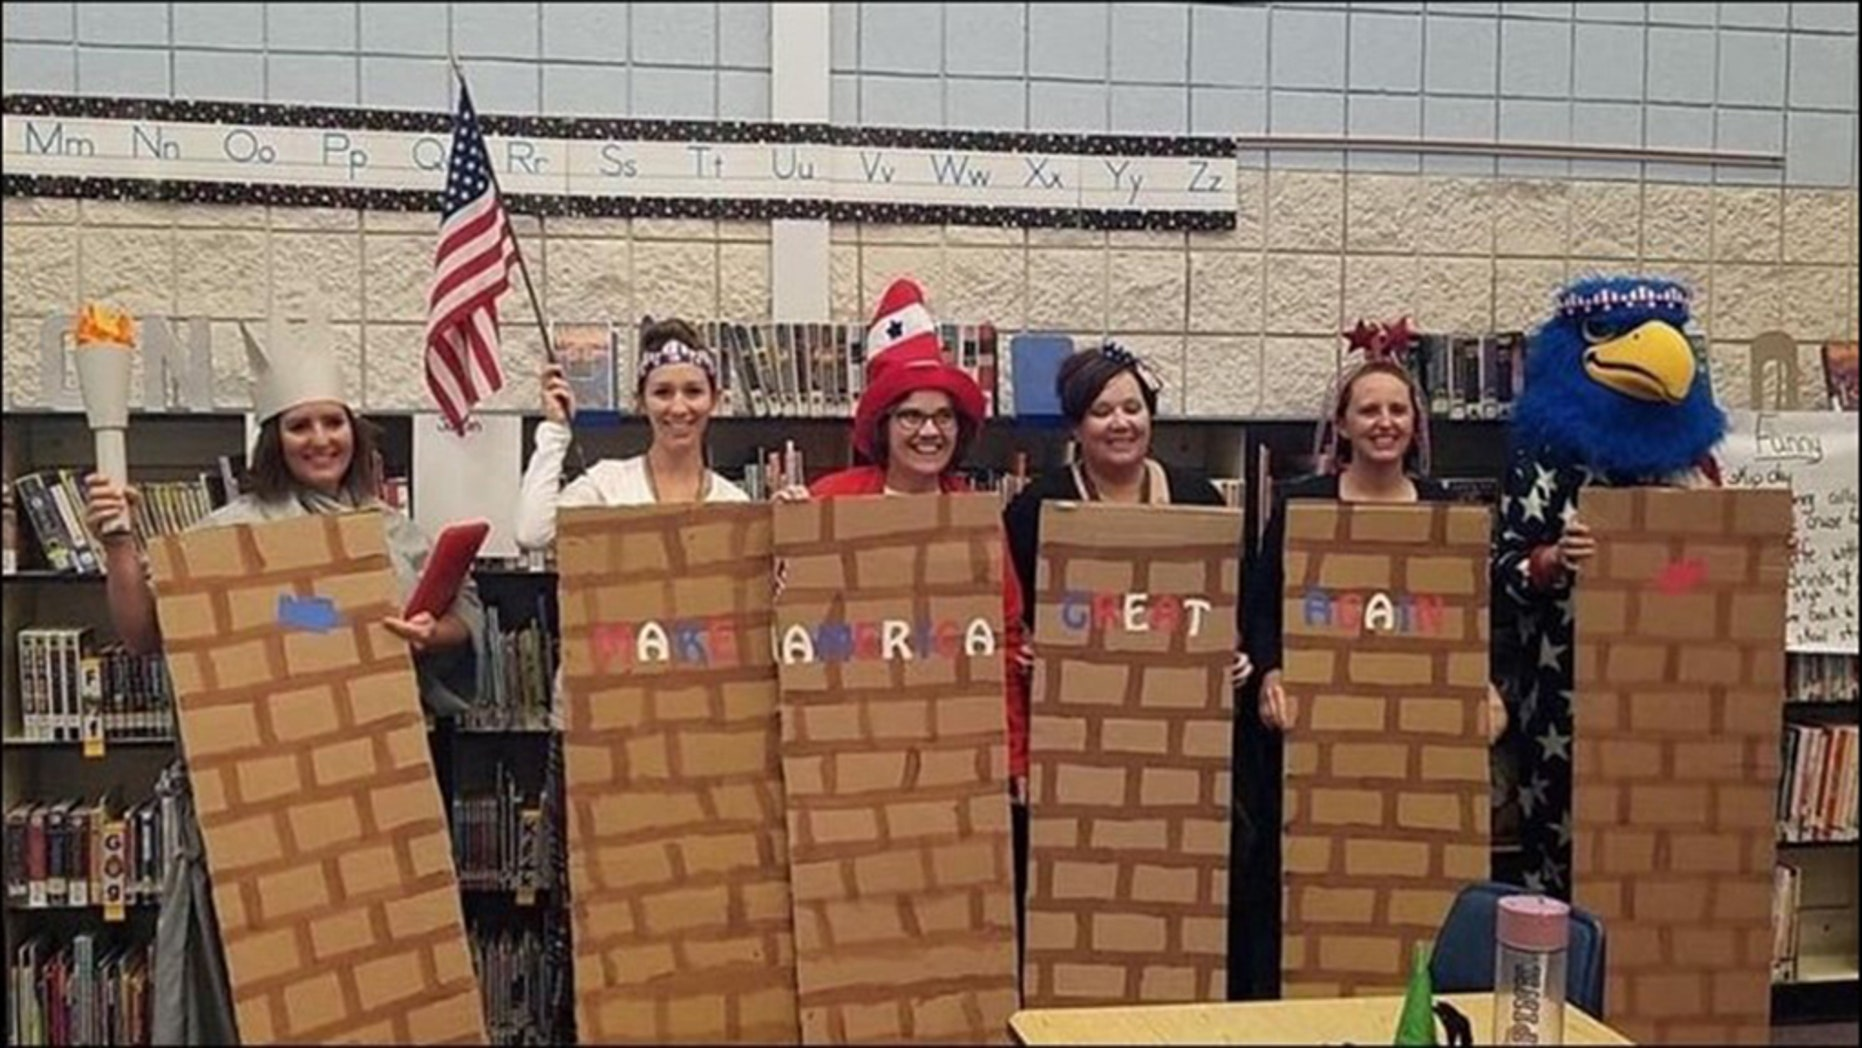 A school district is investigating after photos showed school employees dressed as a border wall.